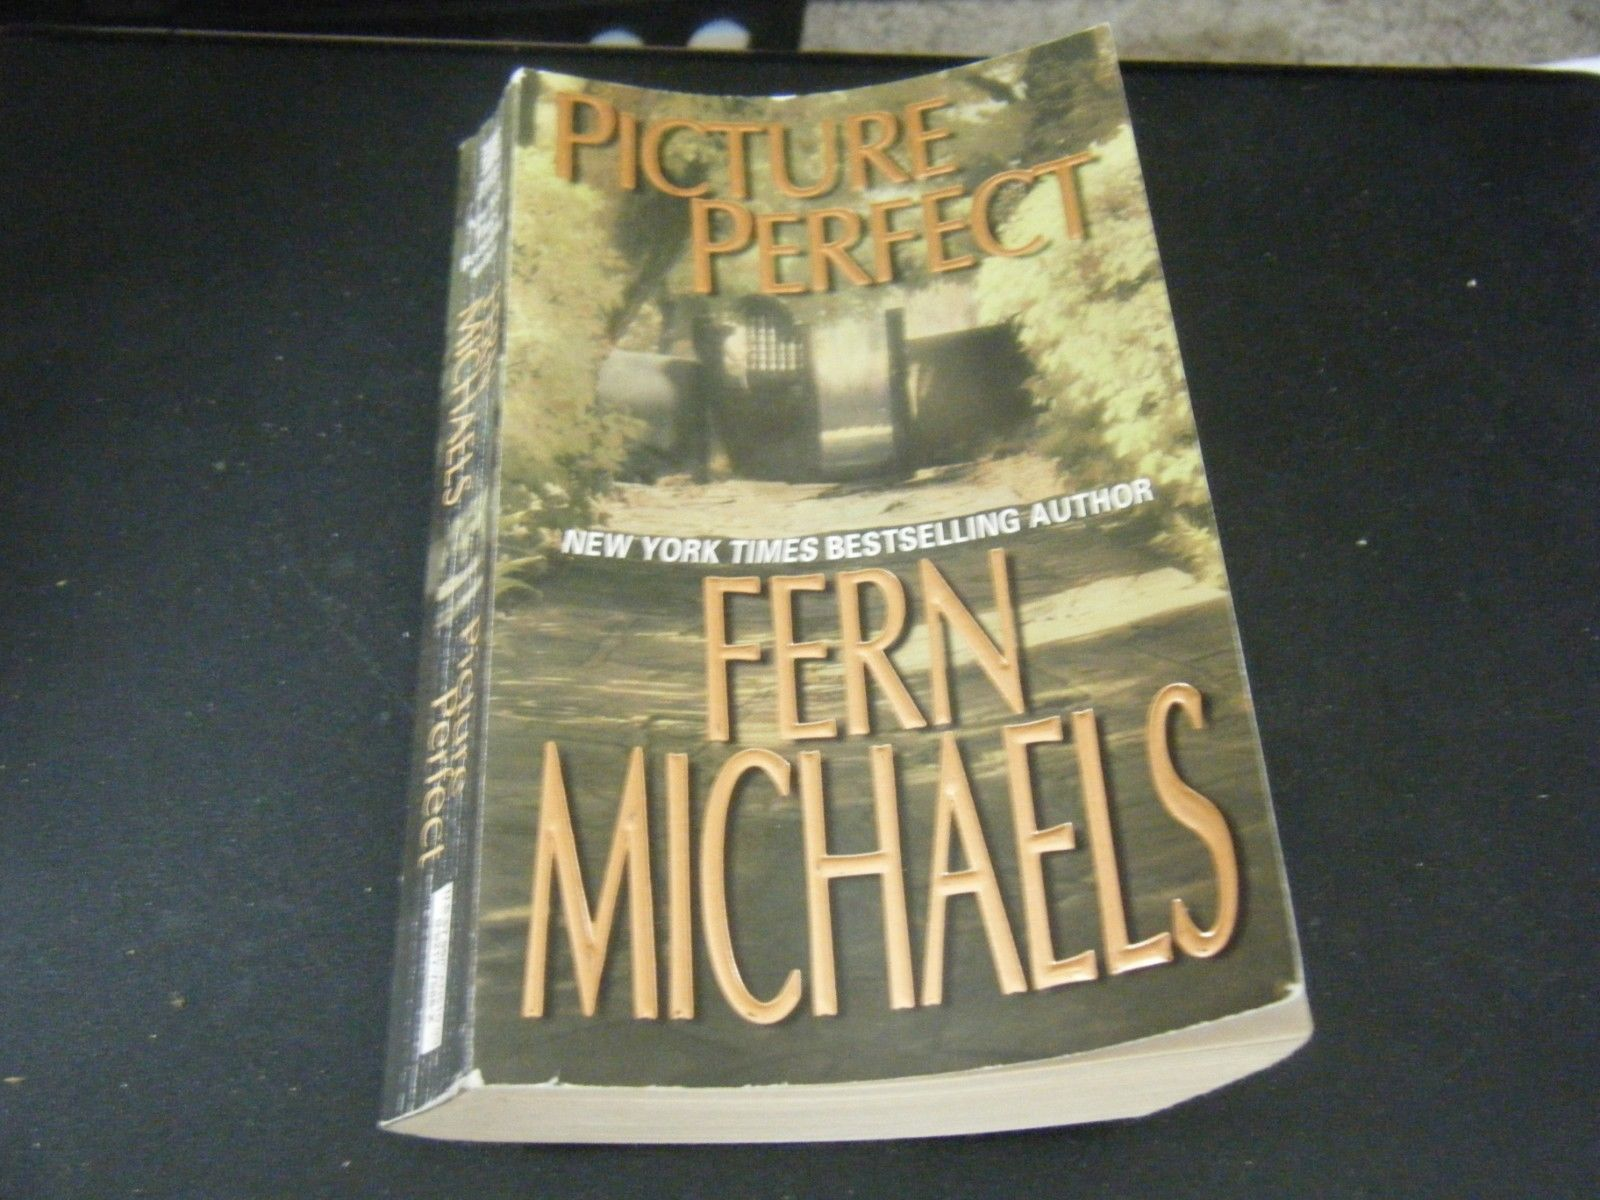 Primary image for Picture Perfect by Fern Michaels (2005, Paperback)